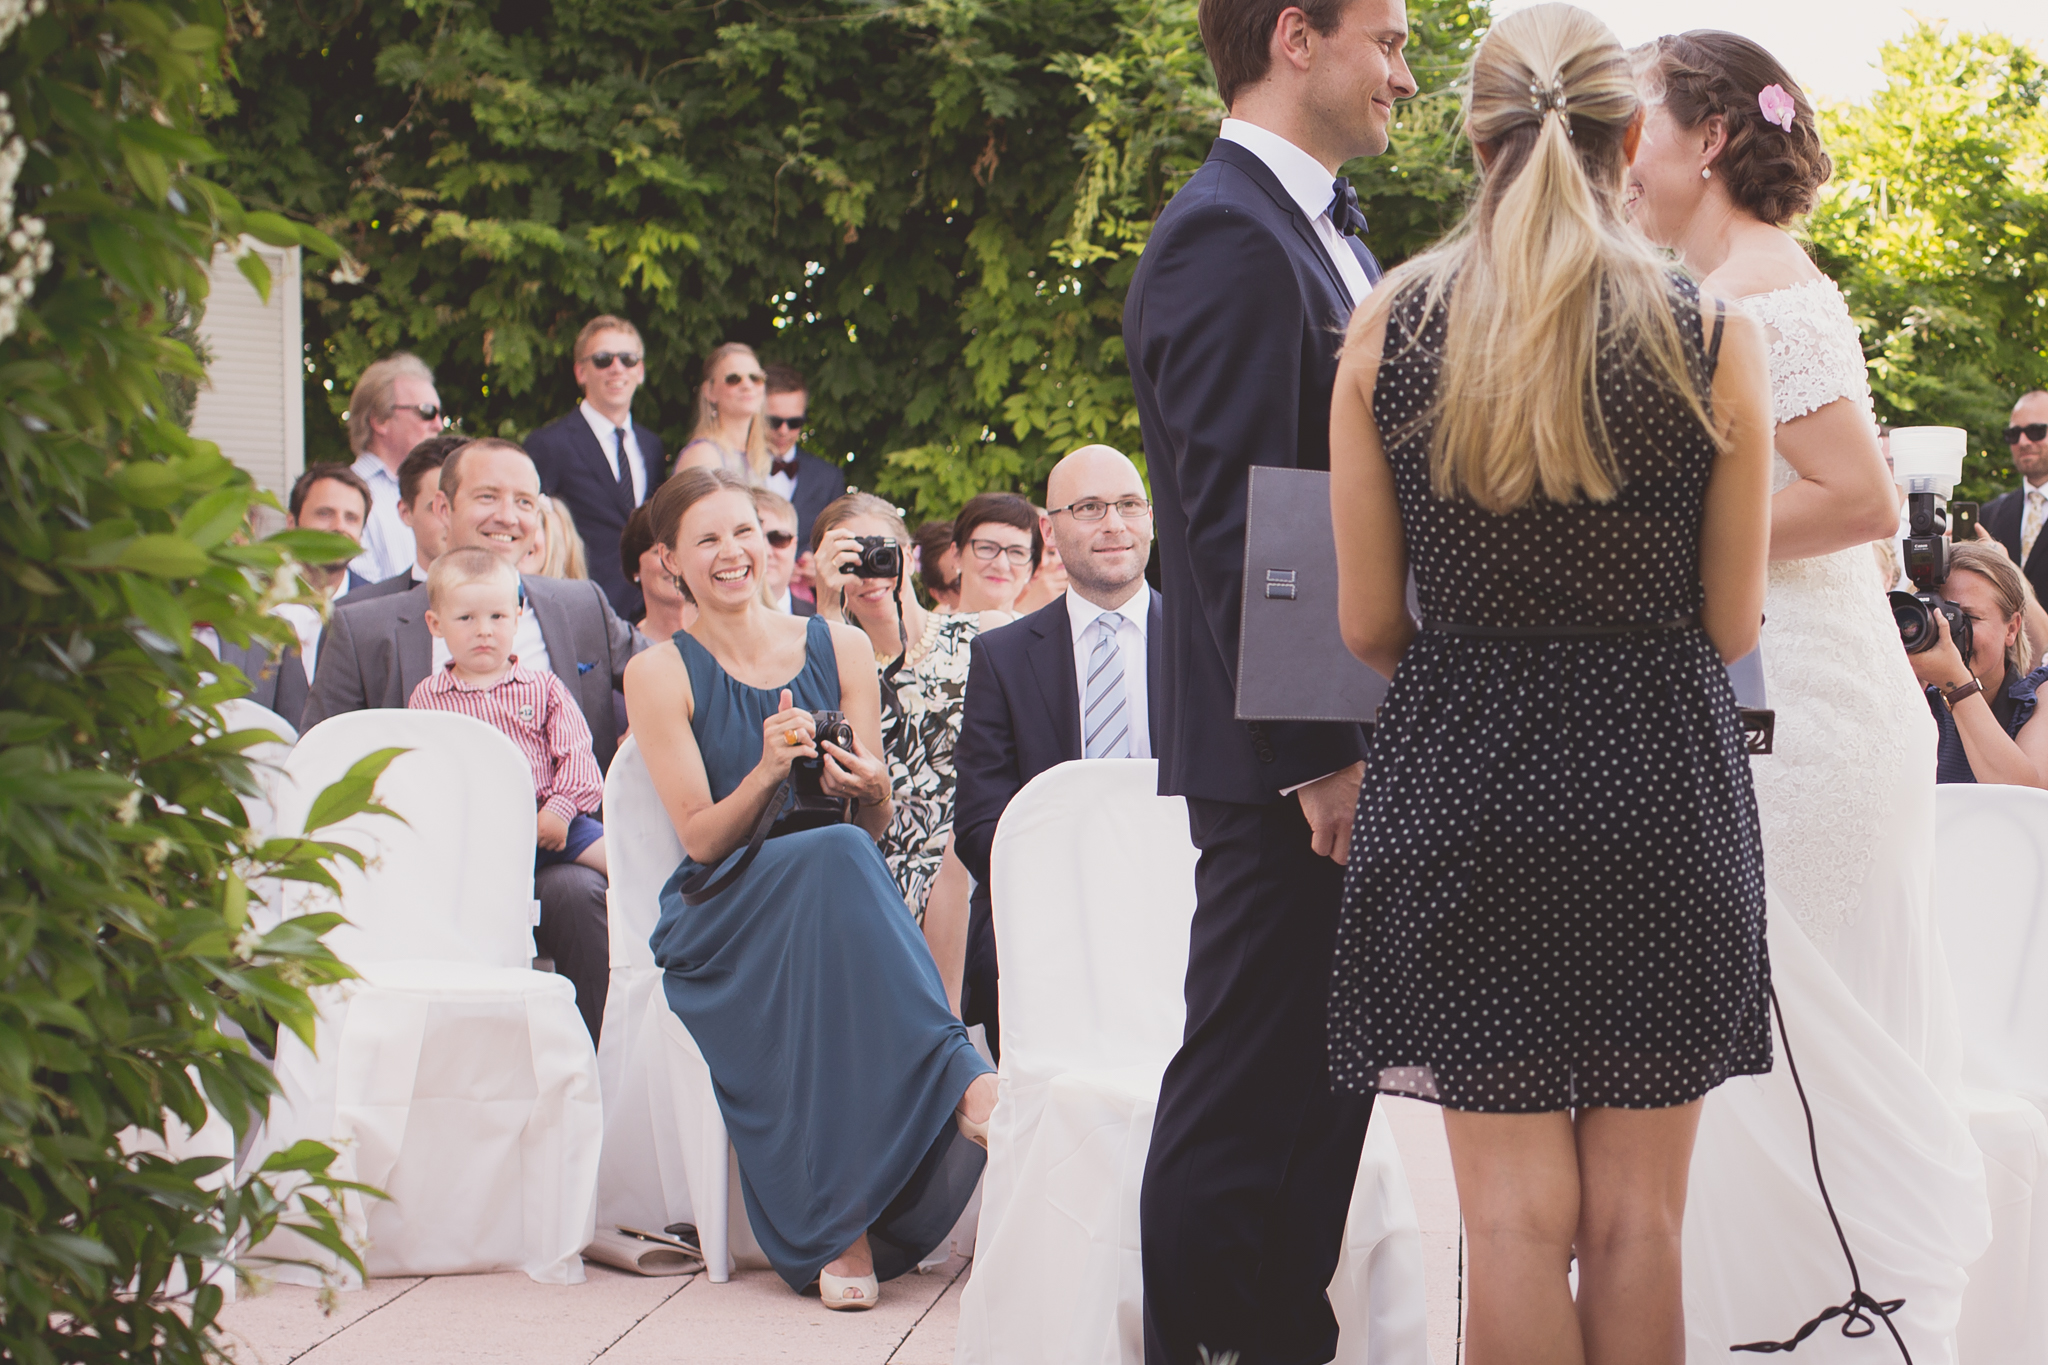 Cathrine+Andreas_Bryllup-62